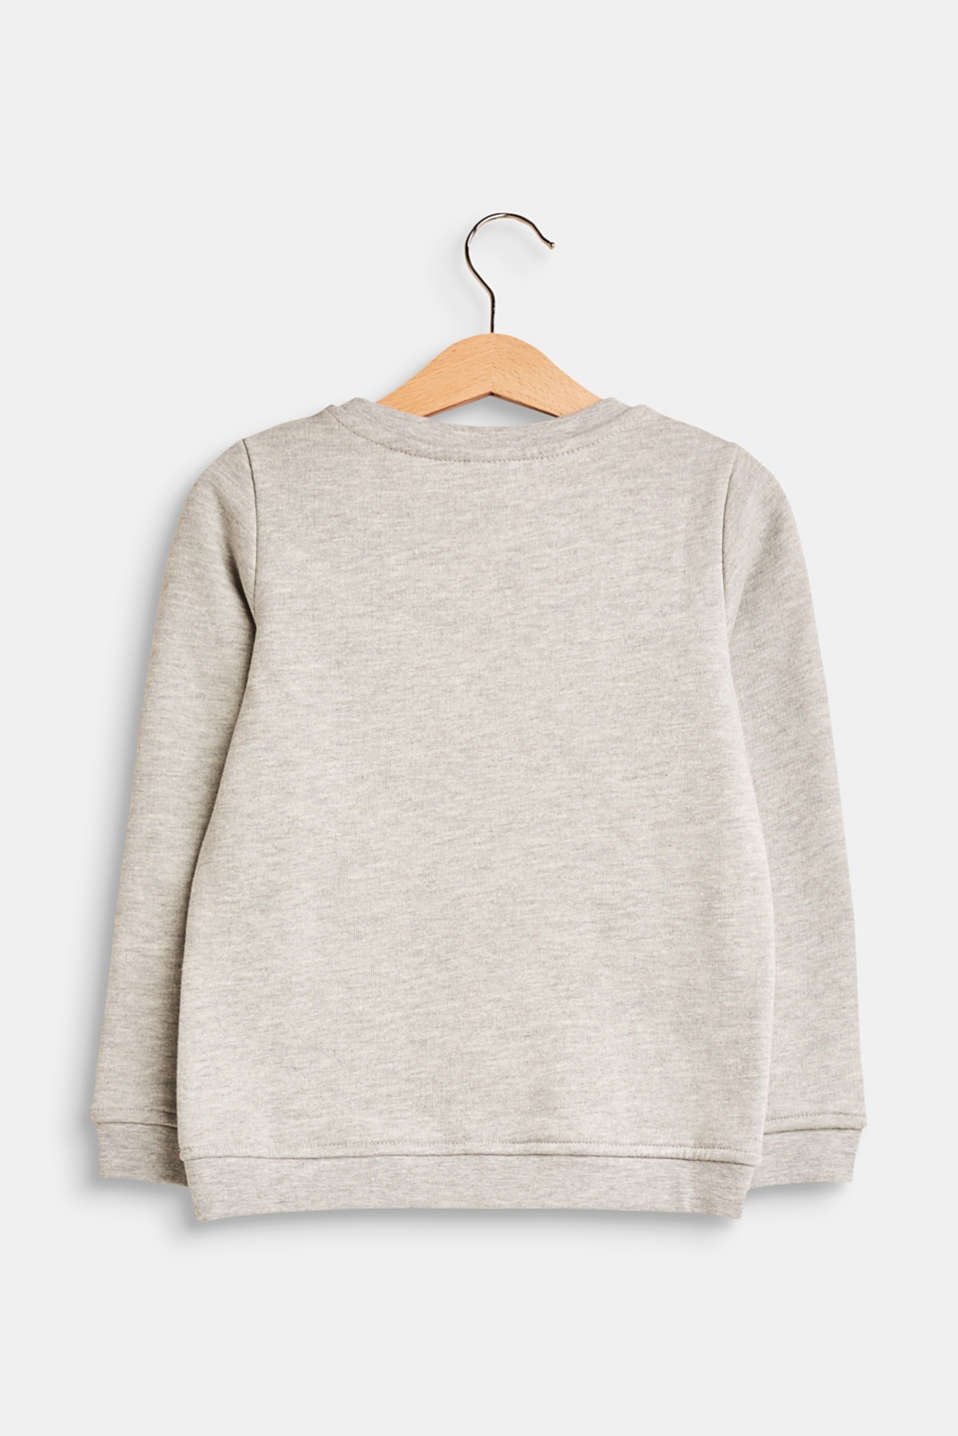 Sweatshirt in blended cotton with a statement print